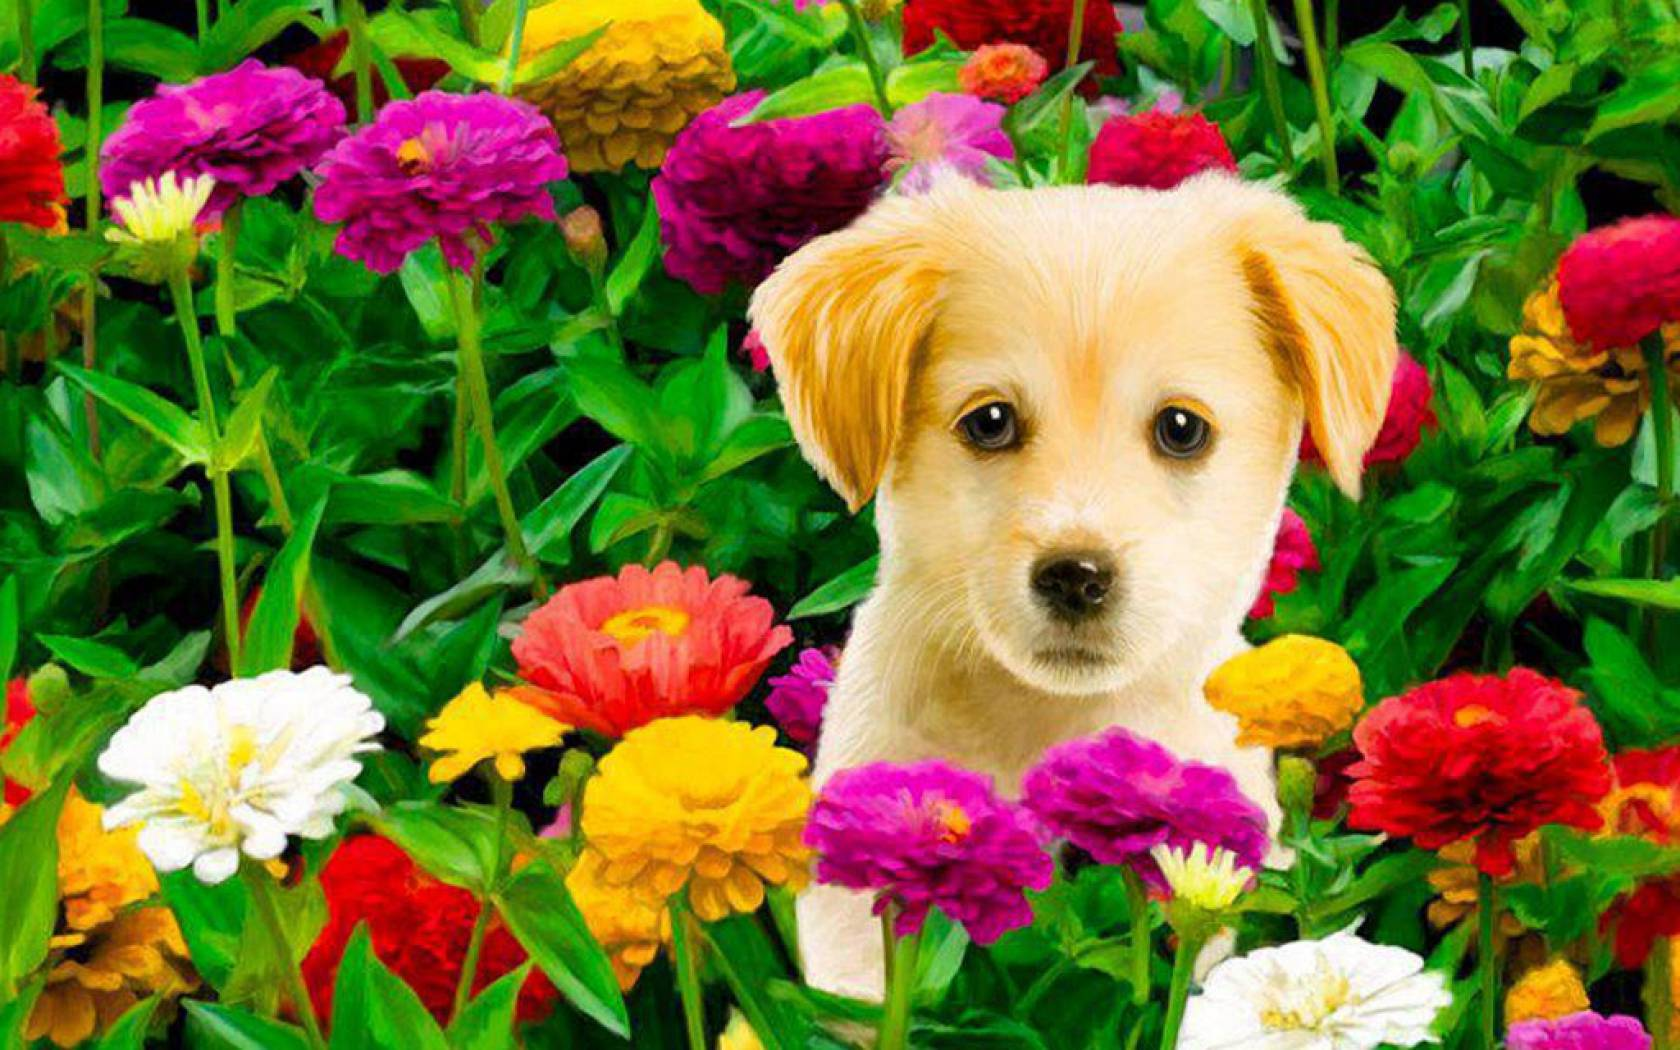 Dogs And Puppies Wallpaper Puppies in Flowers Com...